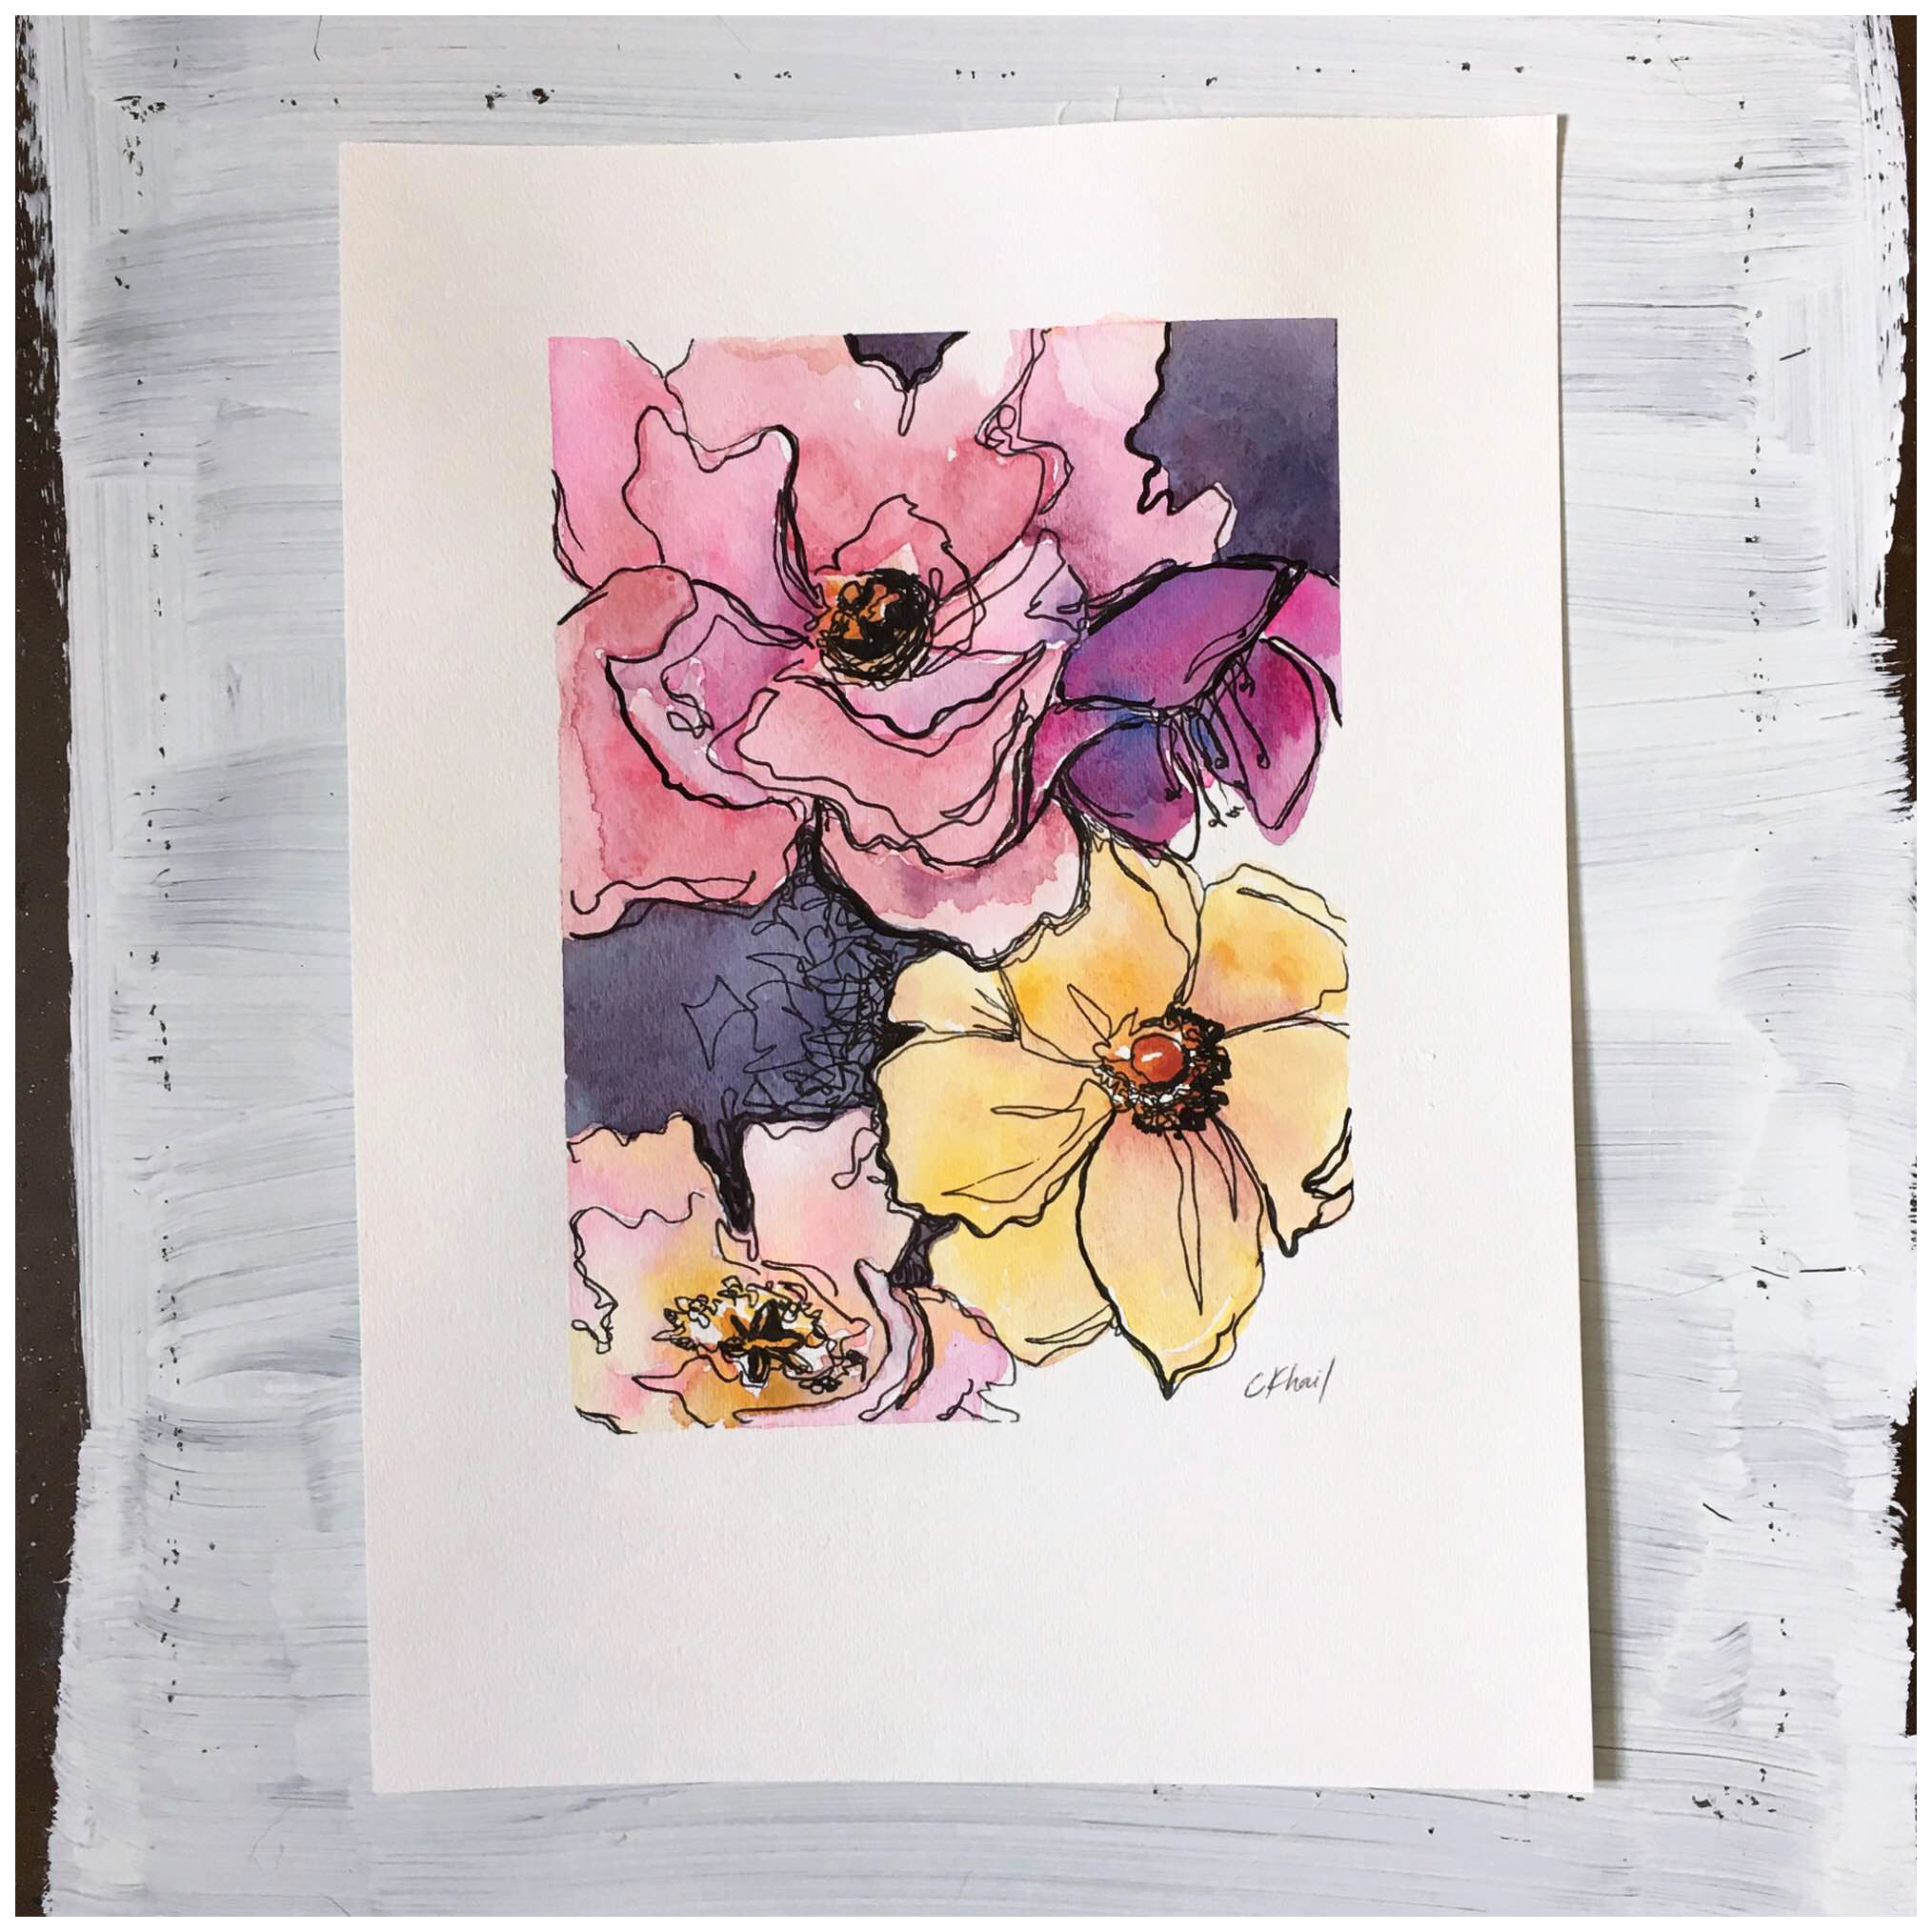 velvet petals | watercolor and ink painting | atlanta contemporary artist courtney khail